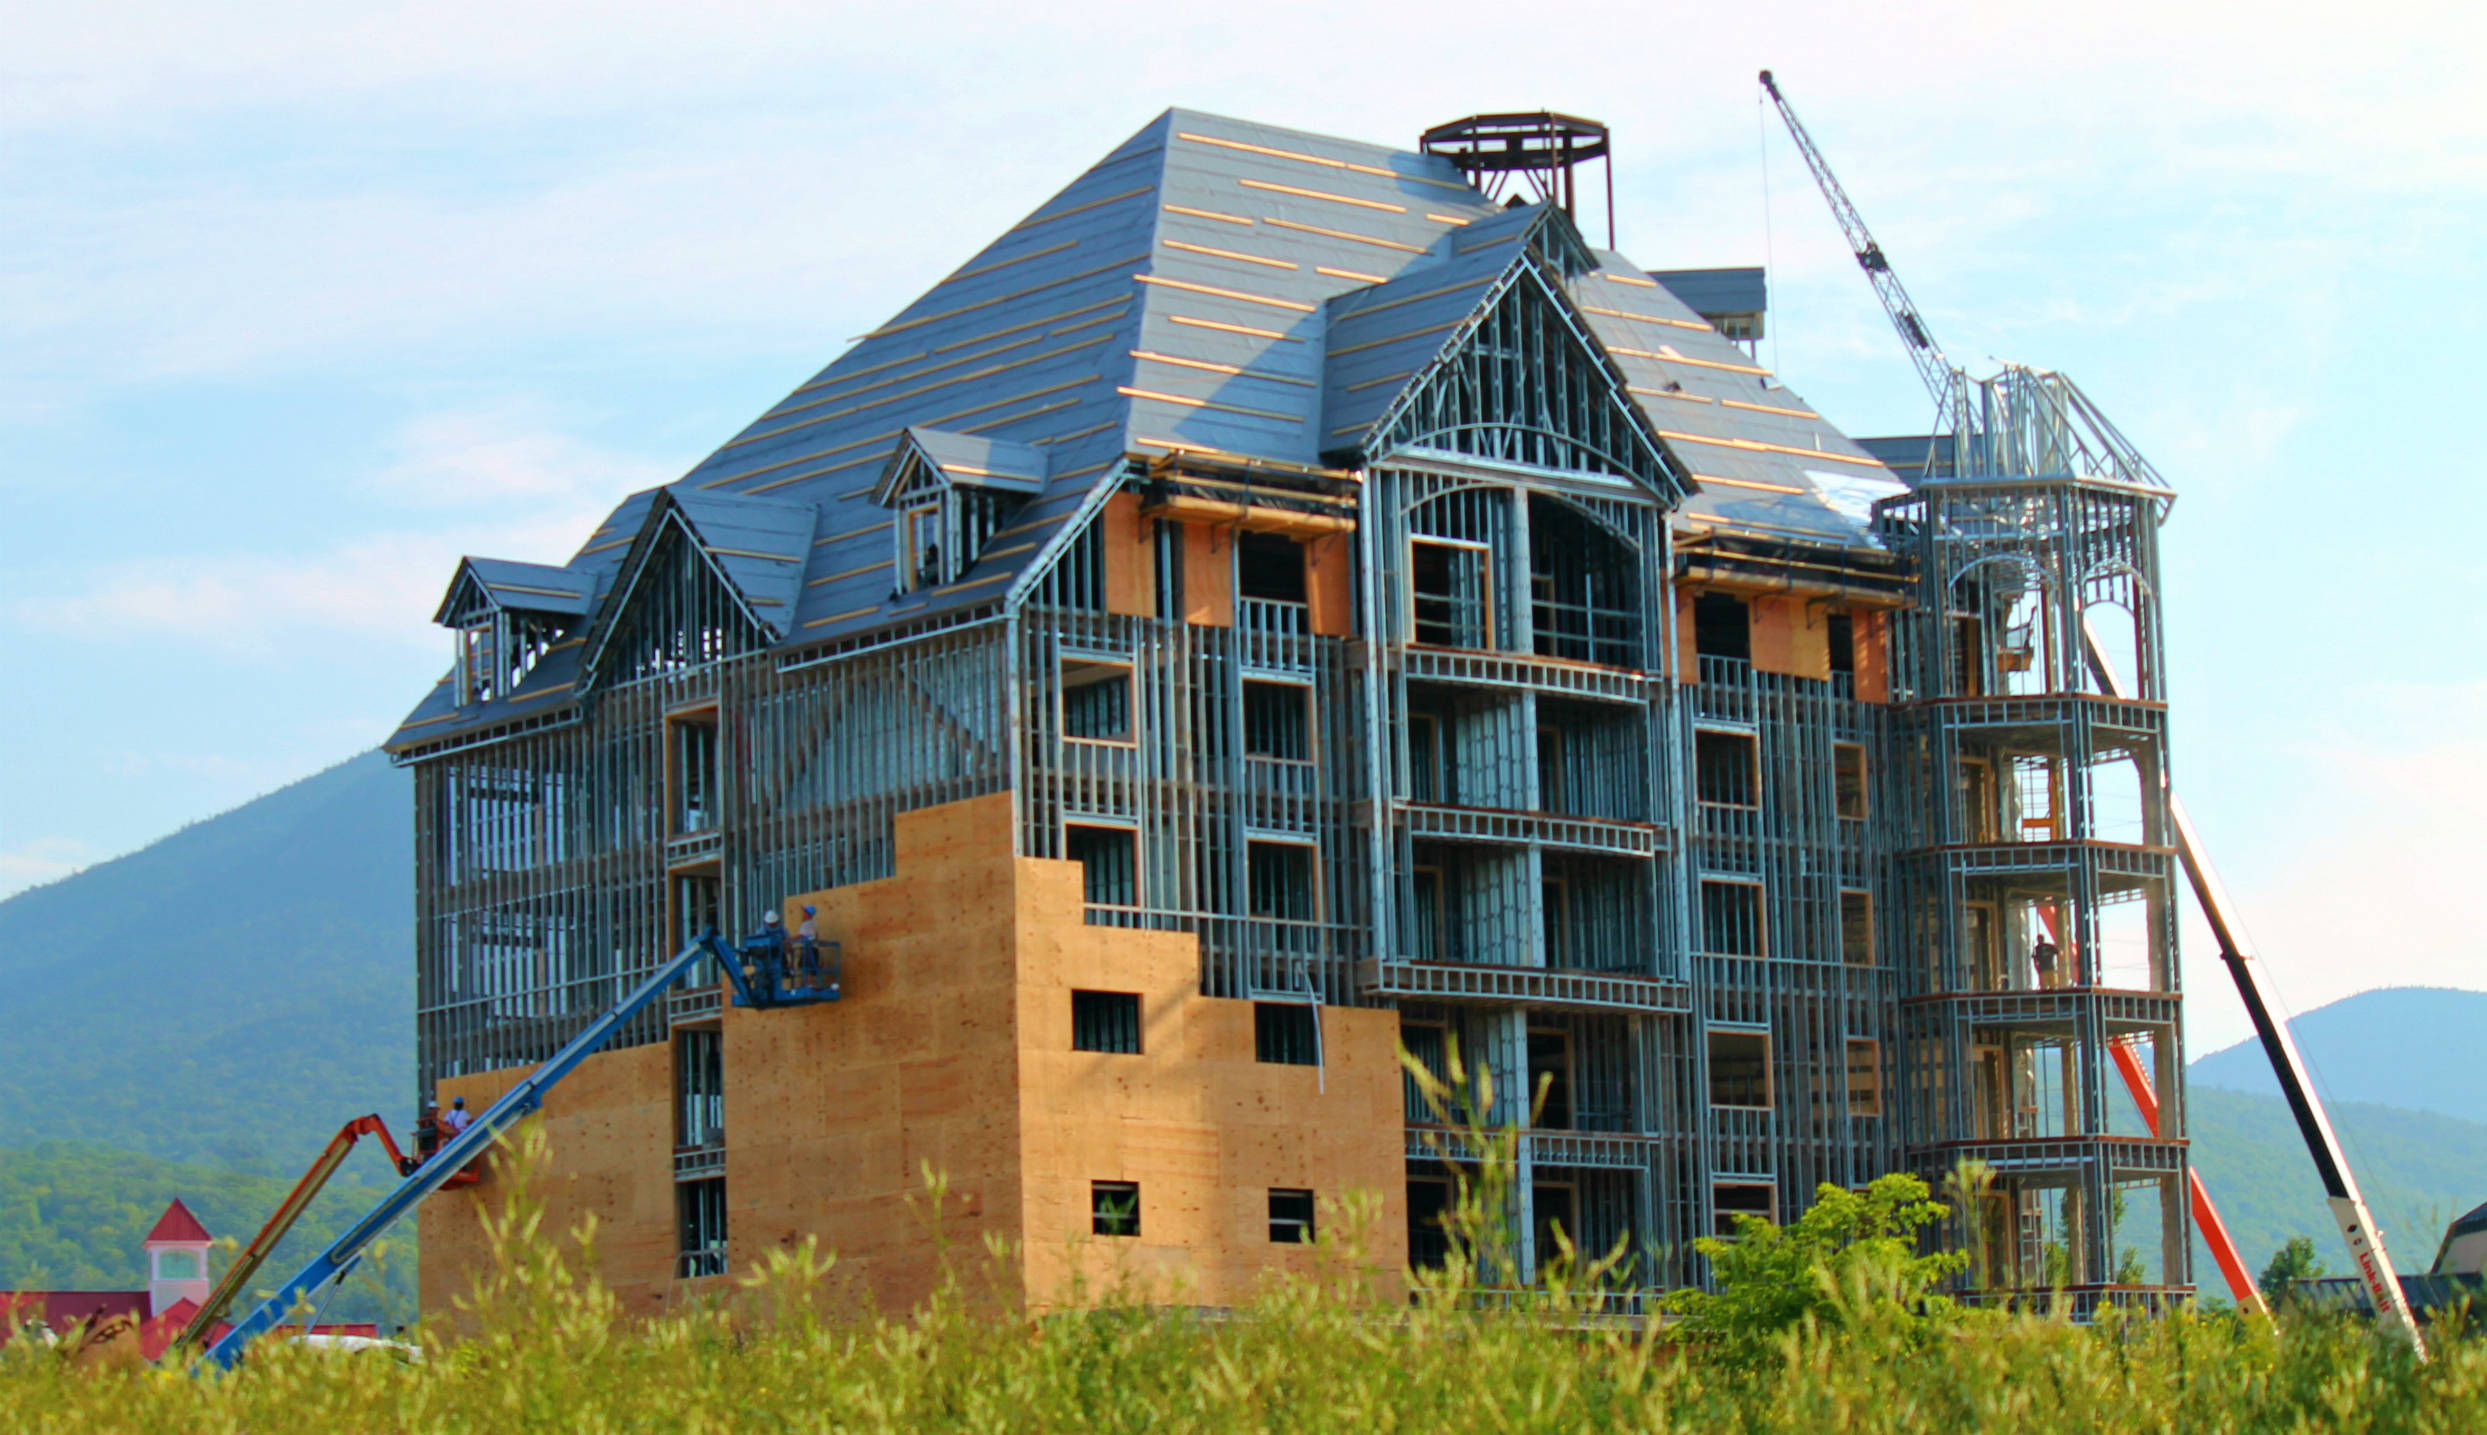 Loon mt lincoln nh new construction condos 2015 16 for New construction in nh